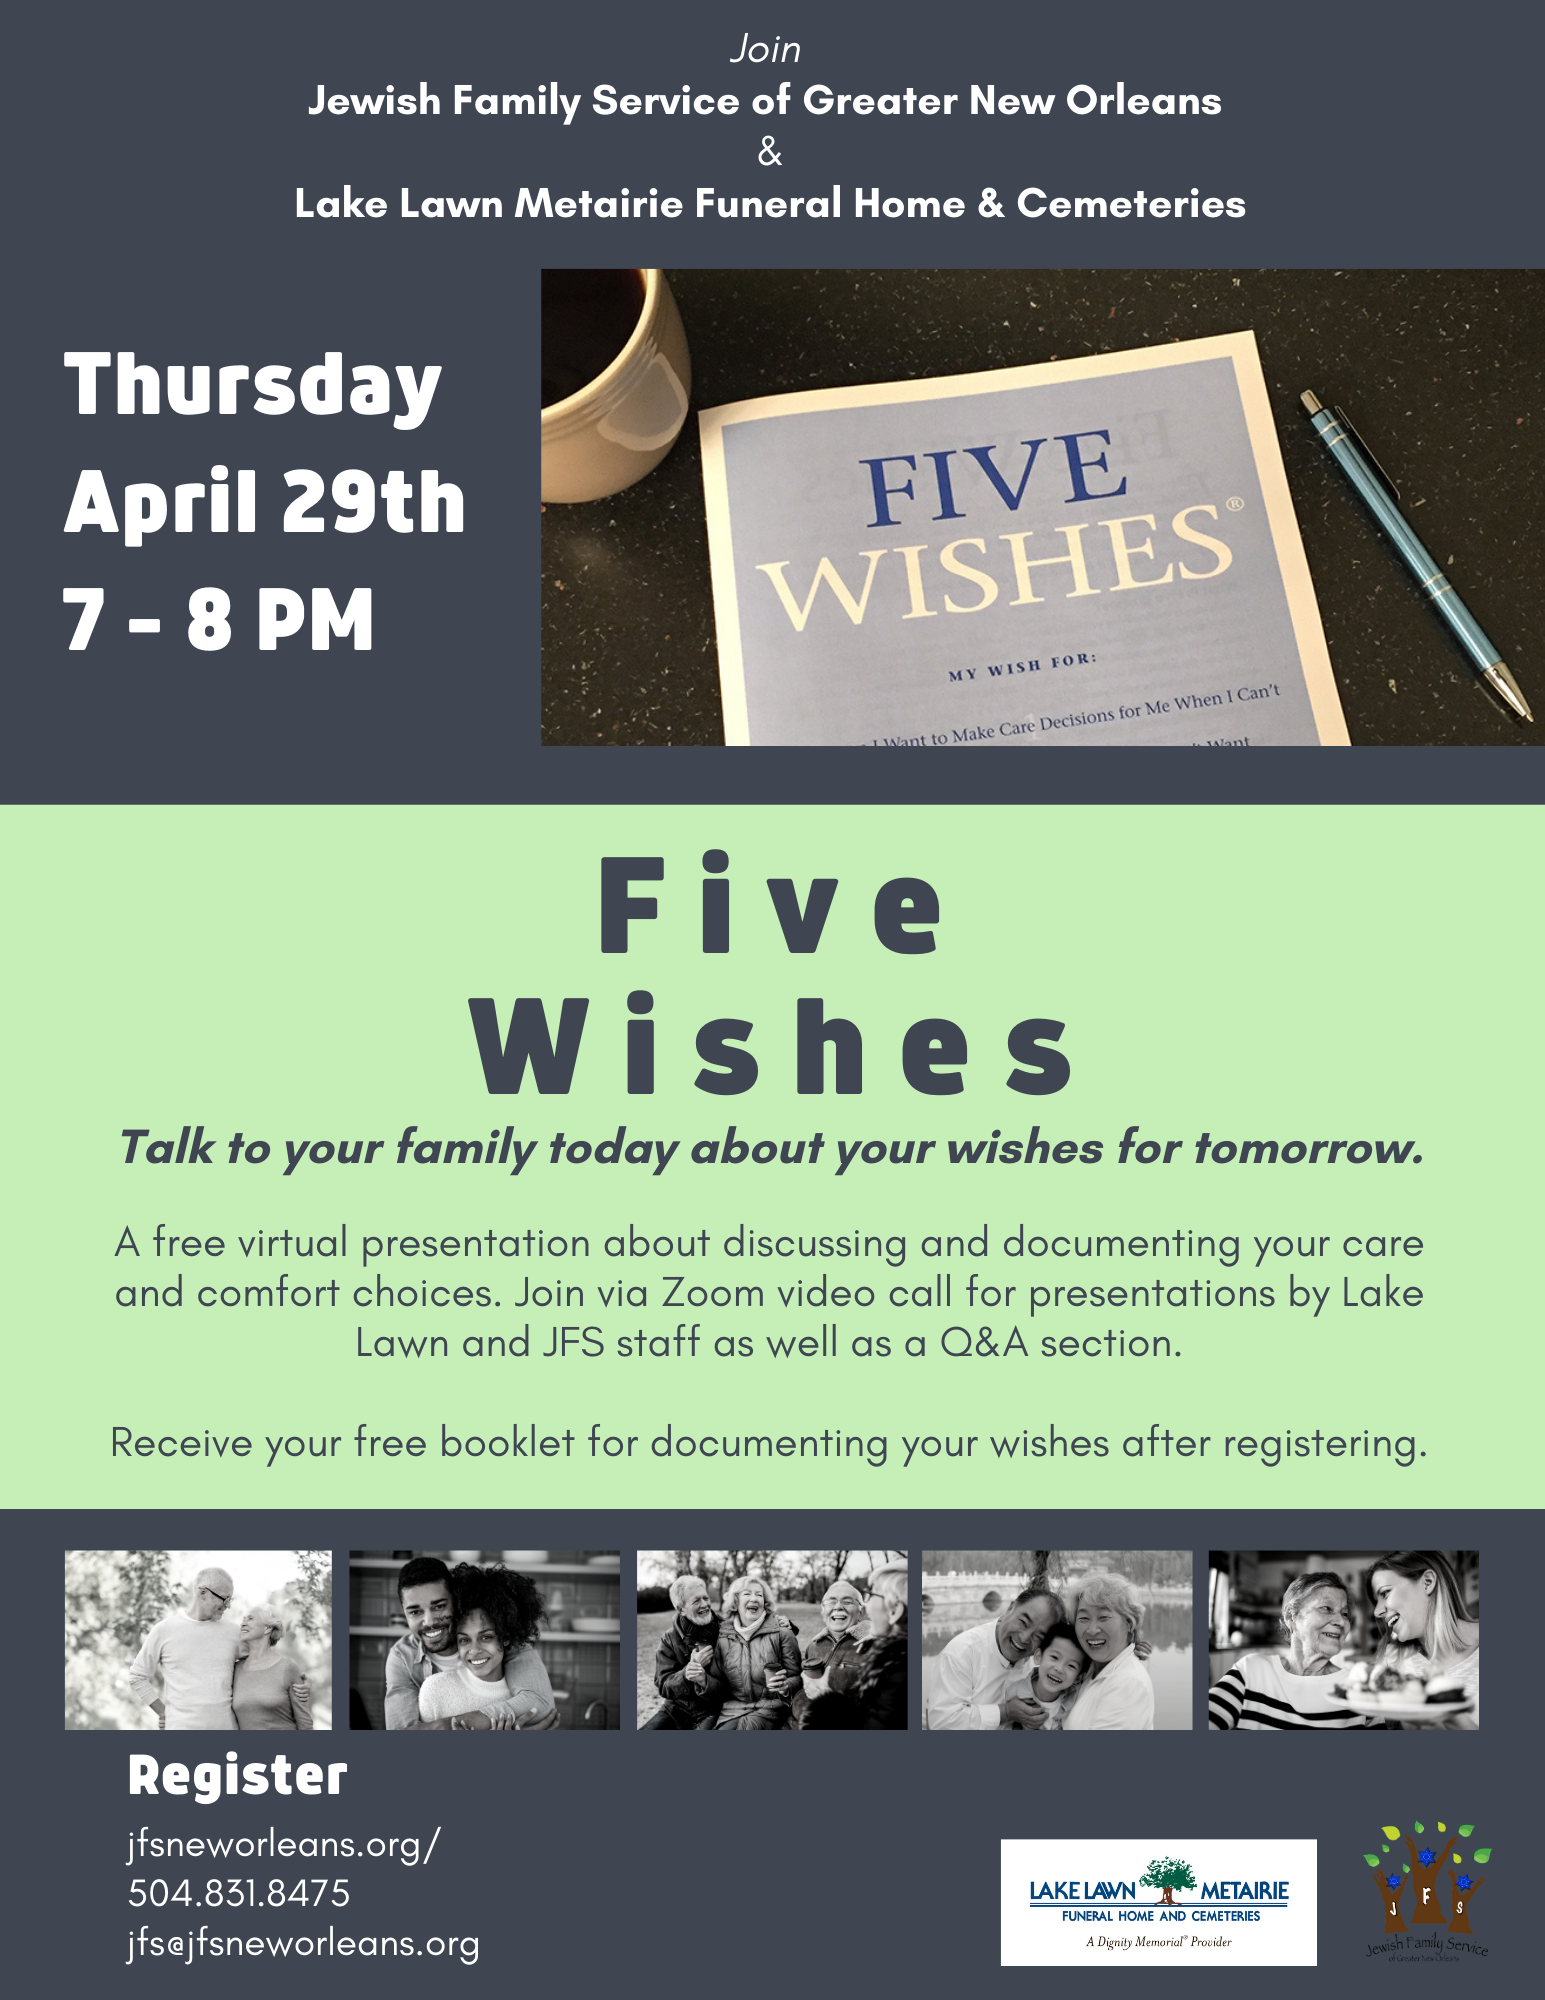 5 wishes flyer (1).png